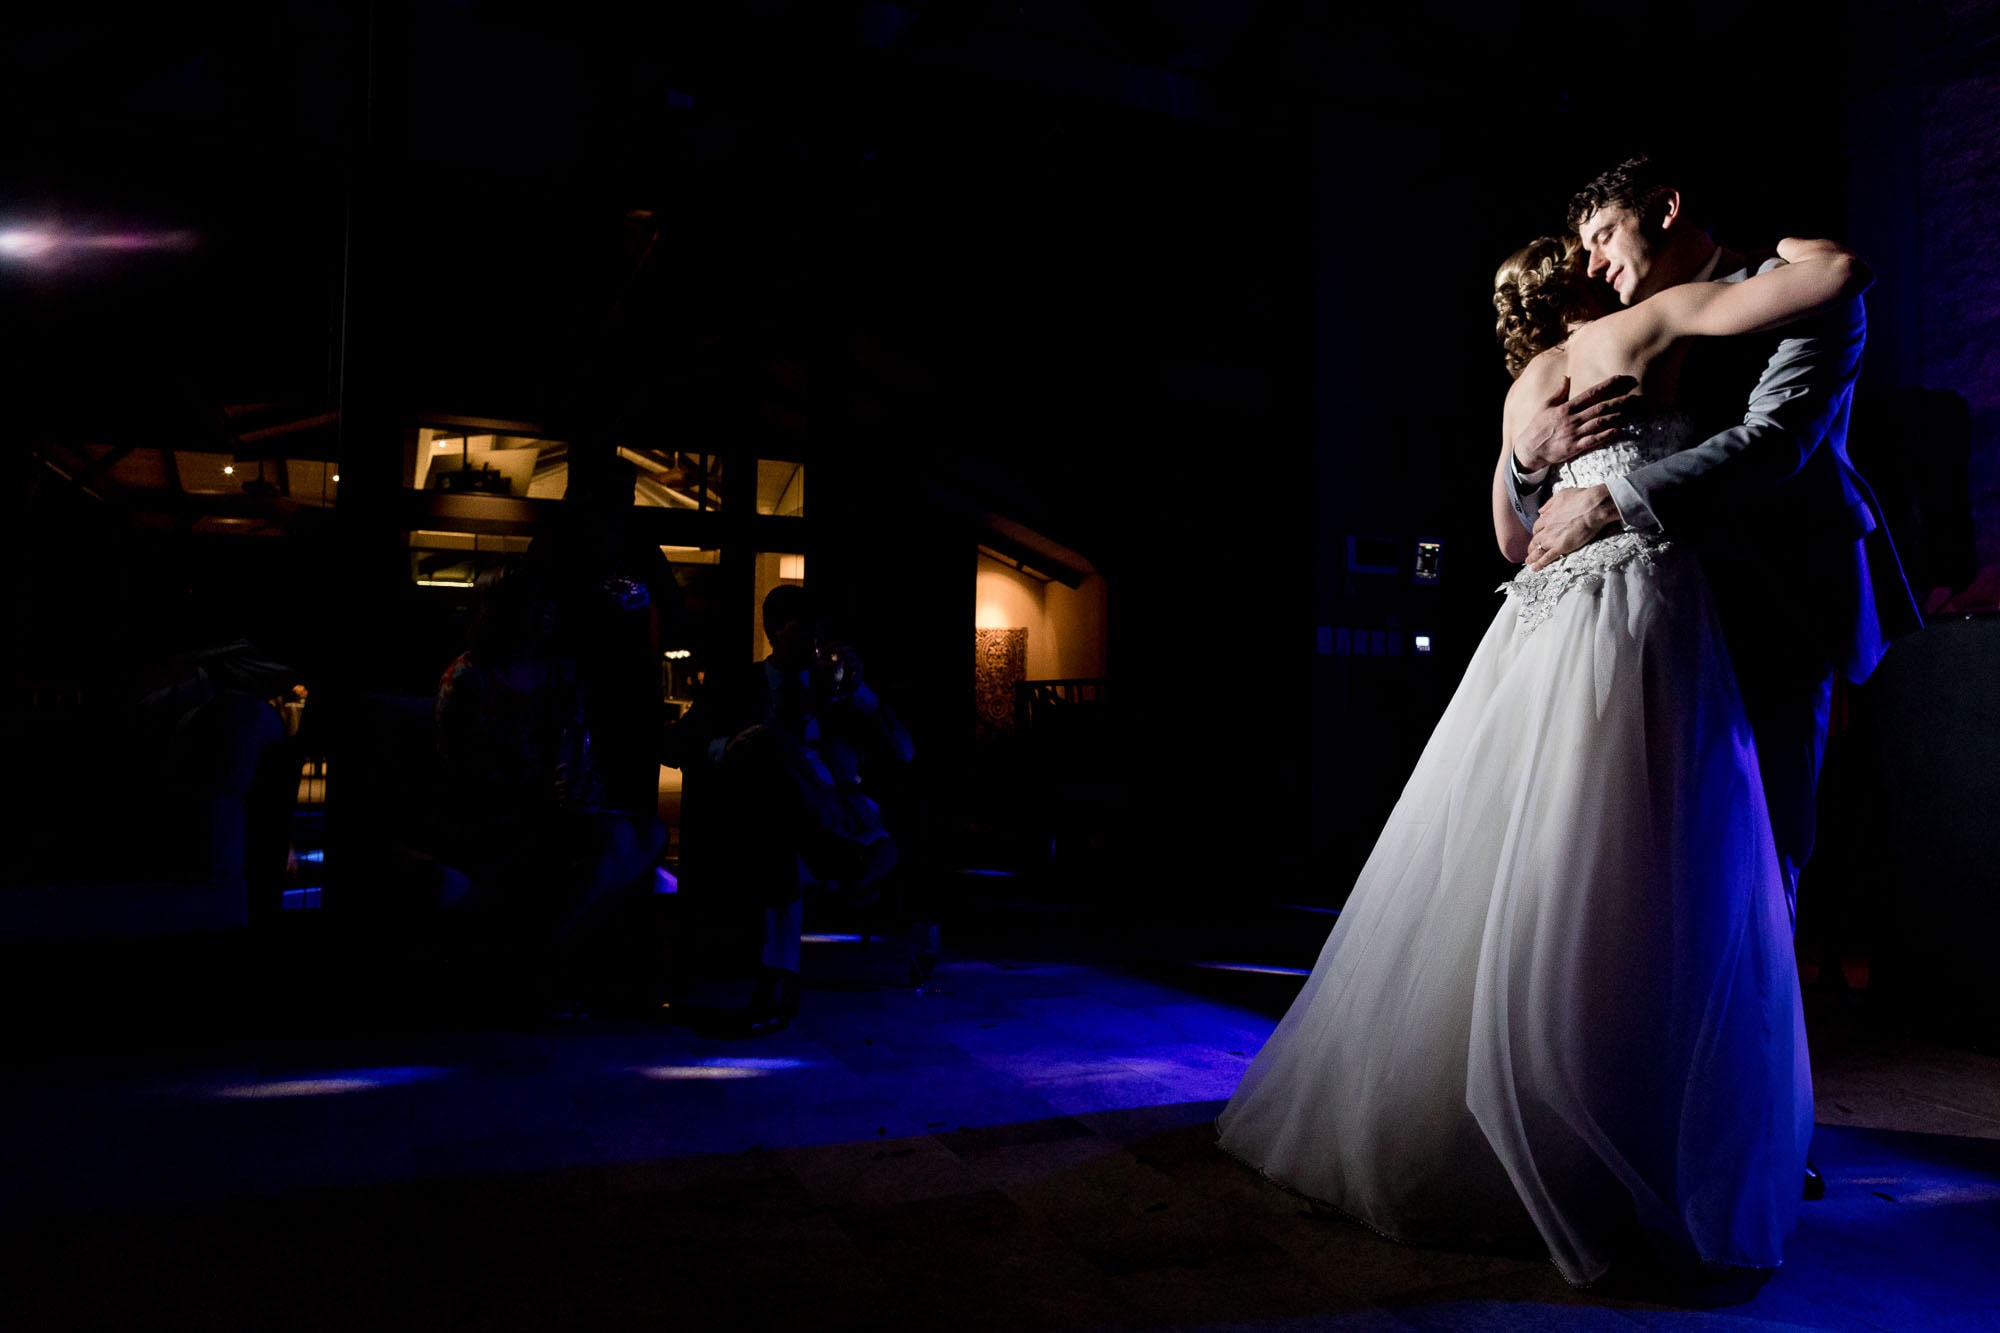 A sweet embrace during the couple's first dance as newlyweds.